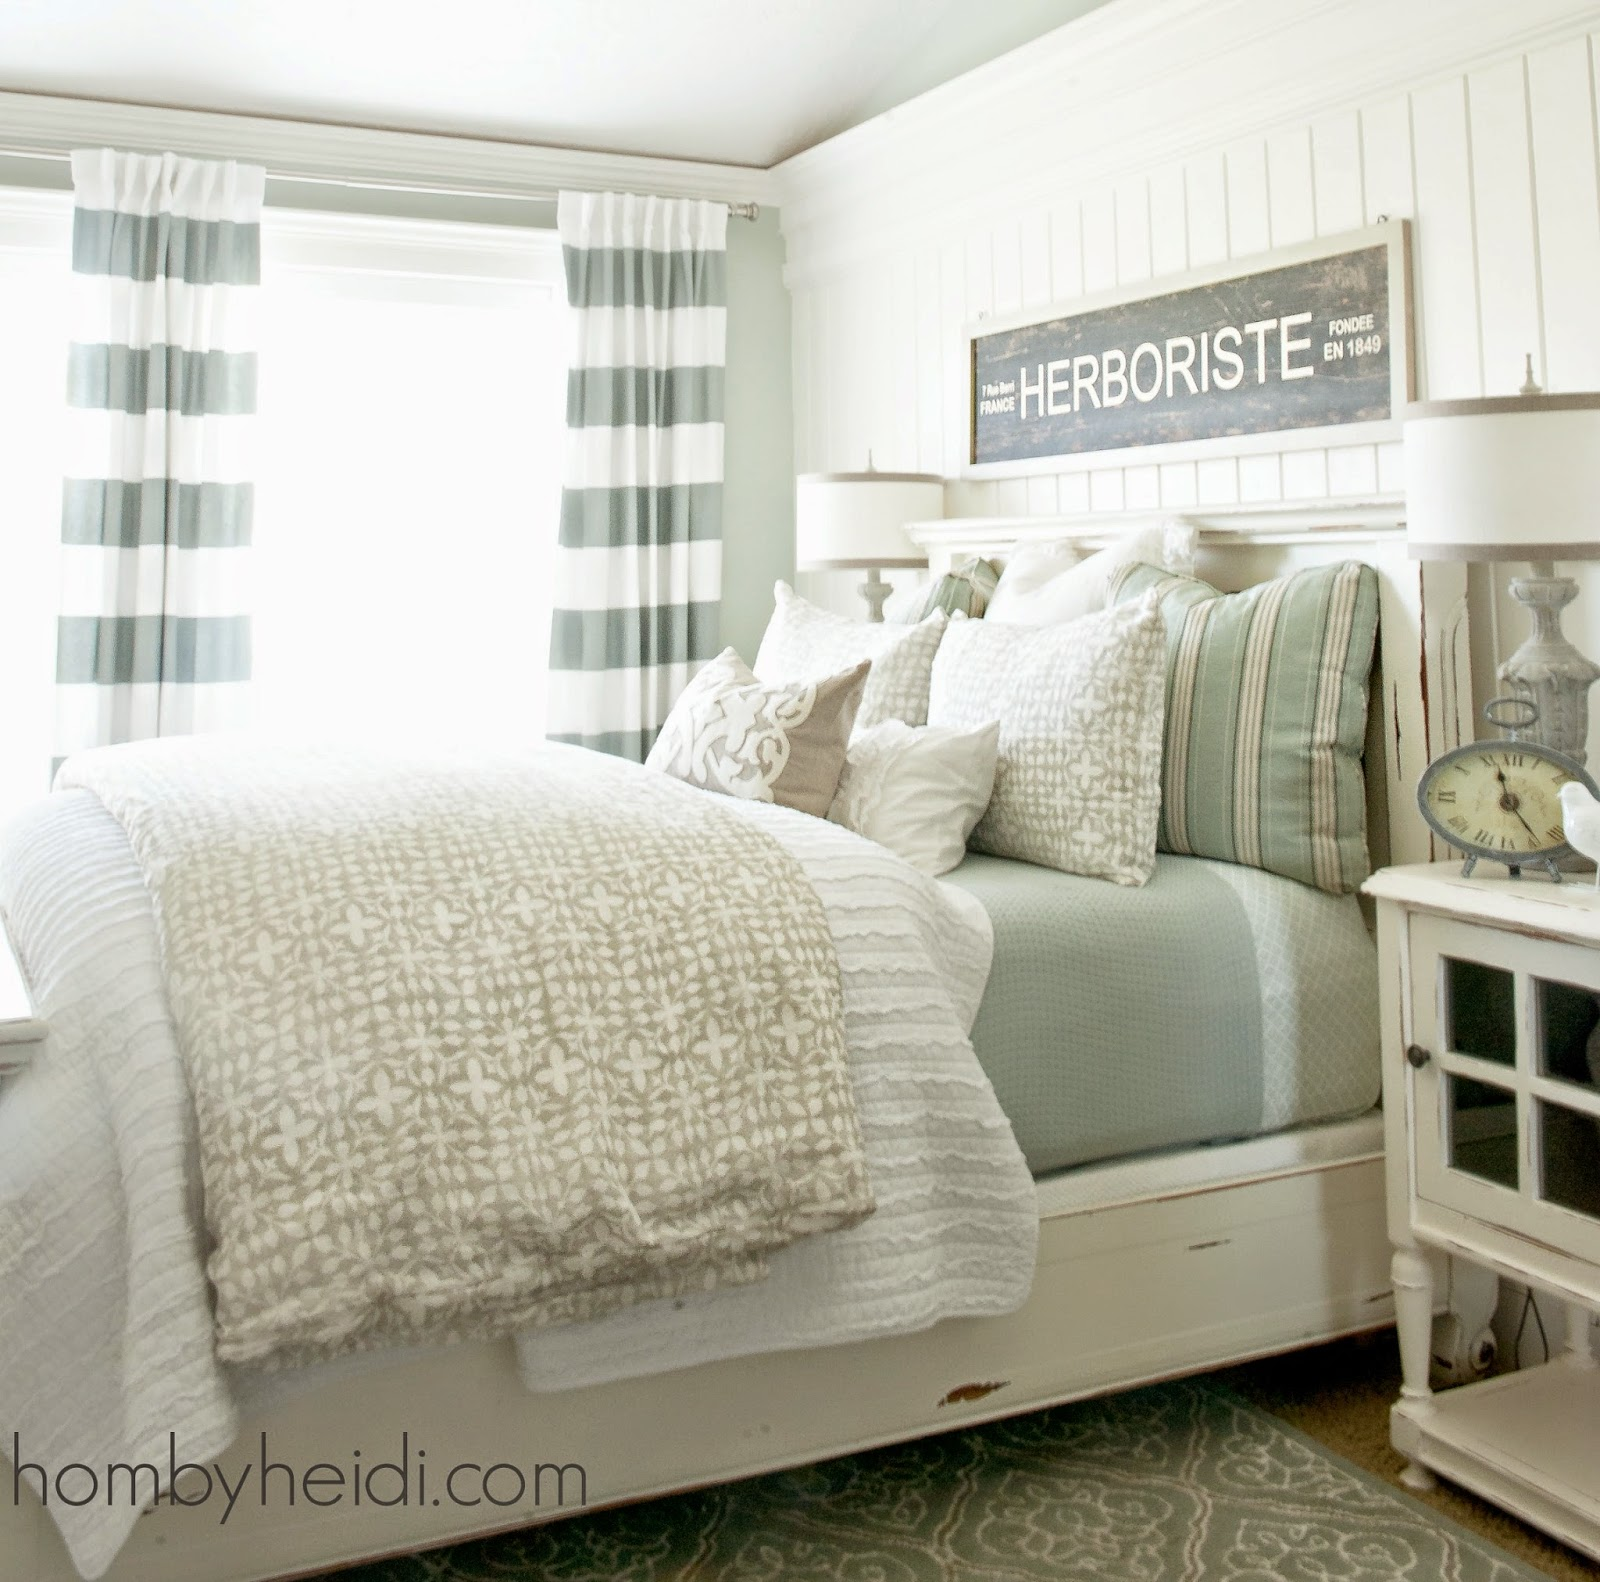 Bedroom Paint: Favorite Paint Colors Blog